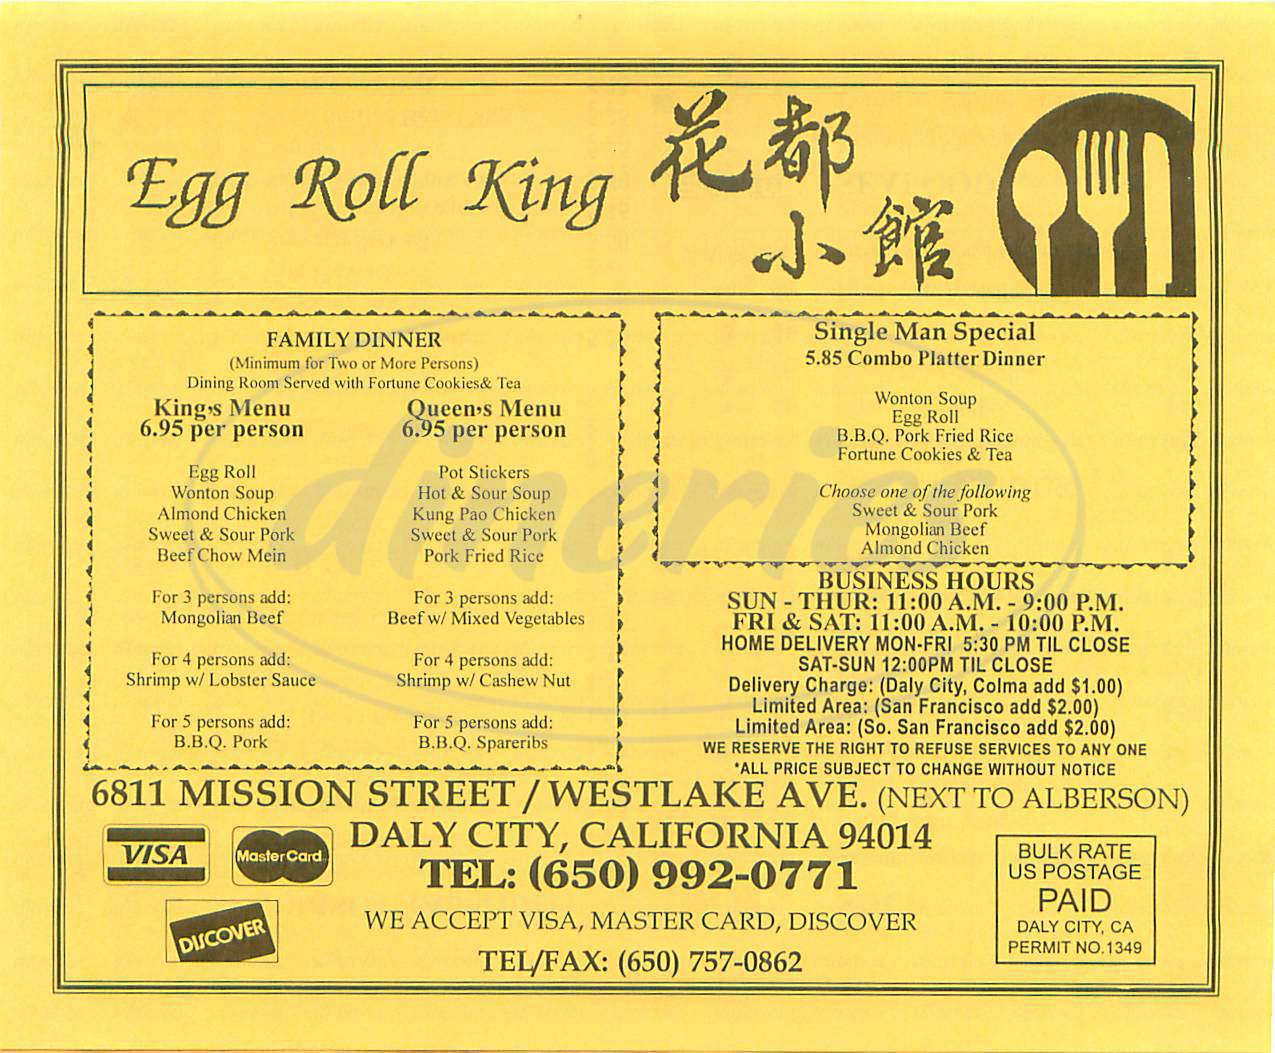 Egg Roll King Chinese Restaurant Daly City Ca